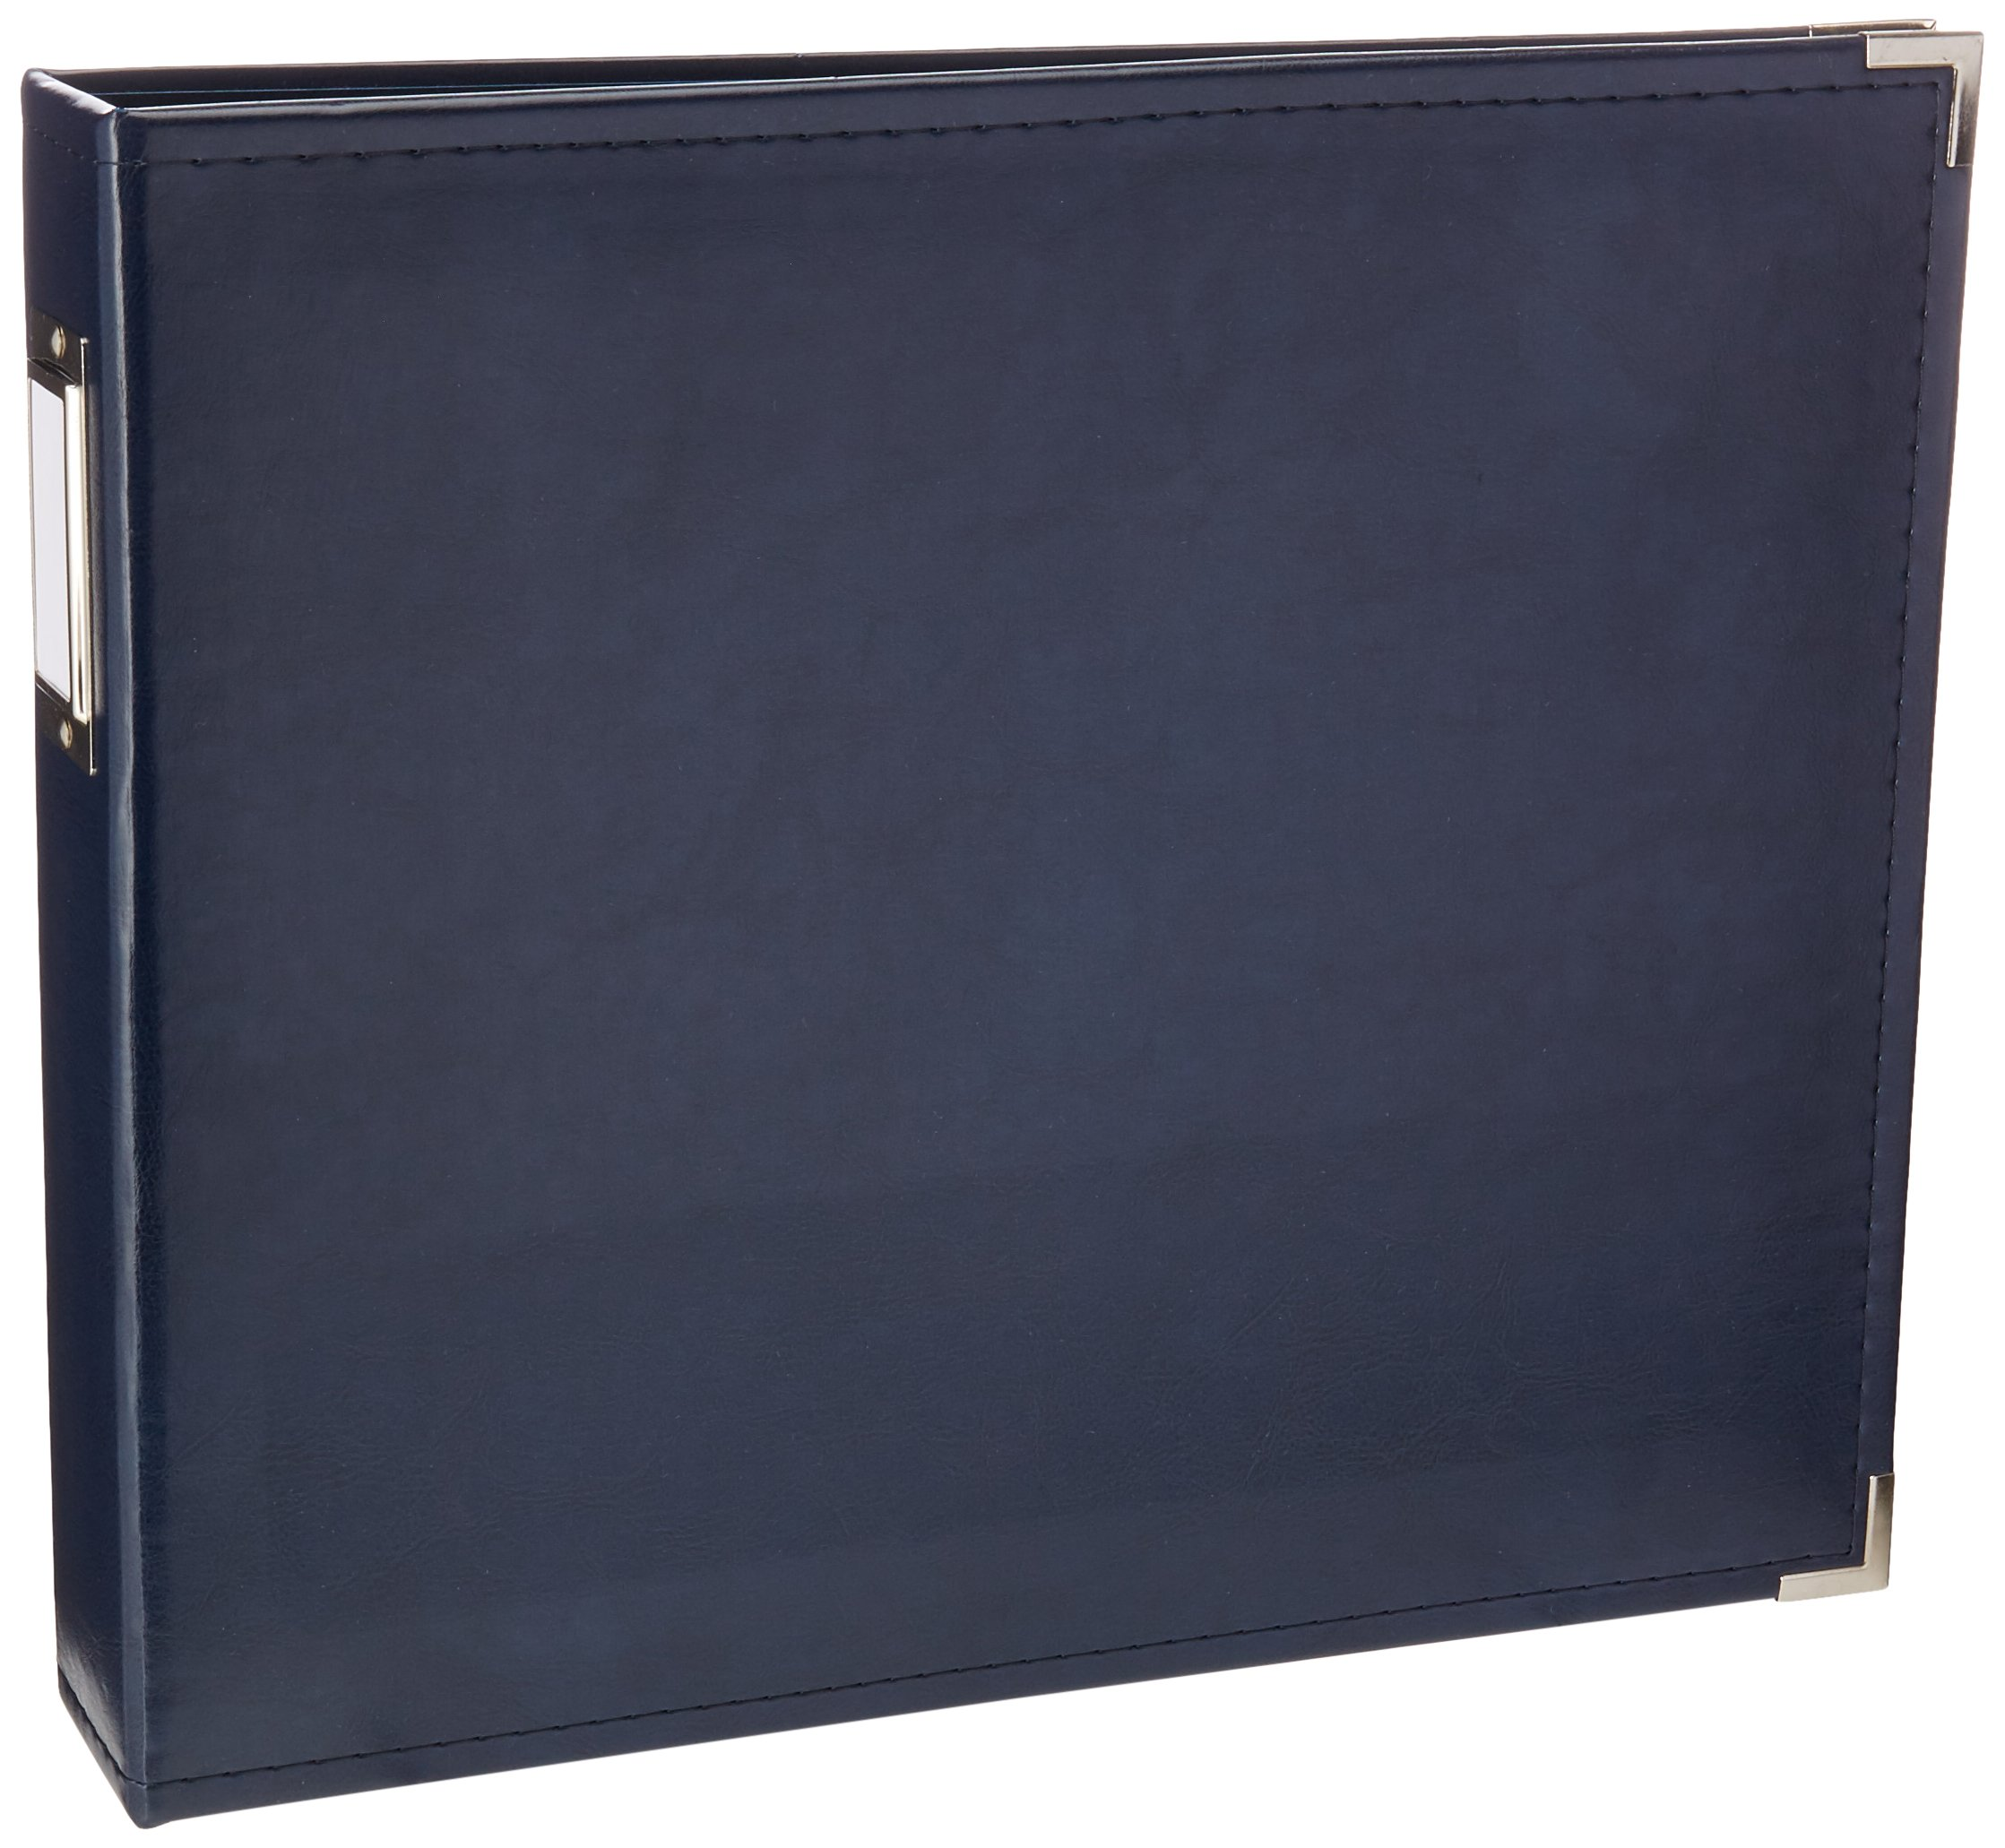 12 x 12-inch Classic Leather 3-Ring Album by We R Memory Keepers | Navy, includes 5 page protectors by We R Memory Keepers